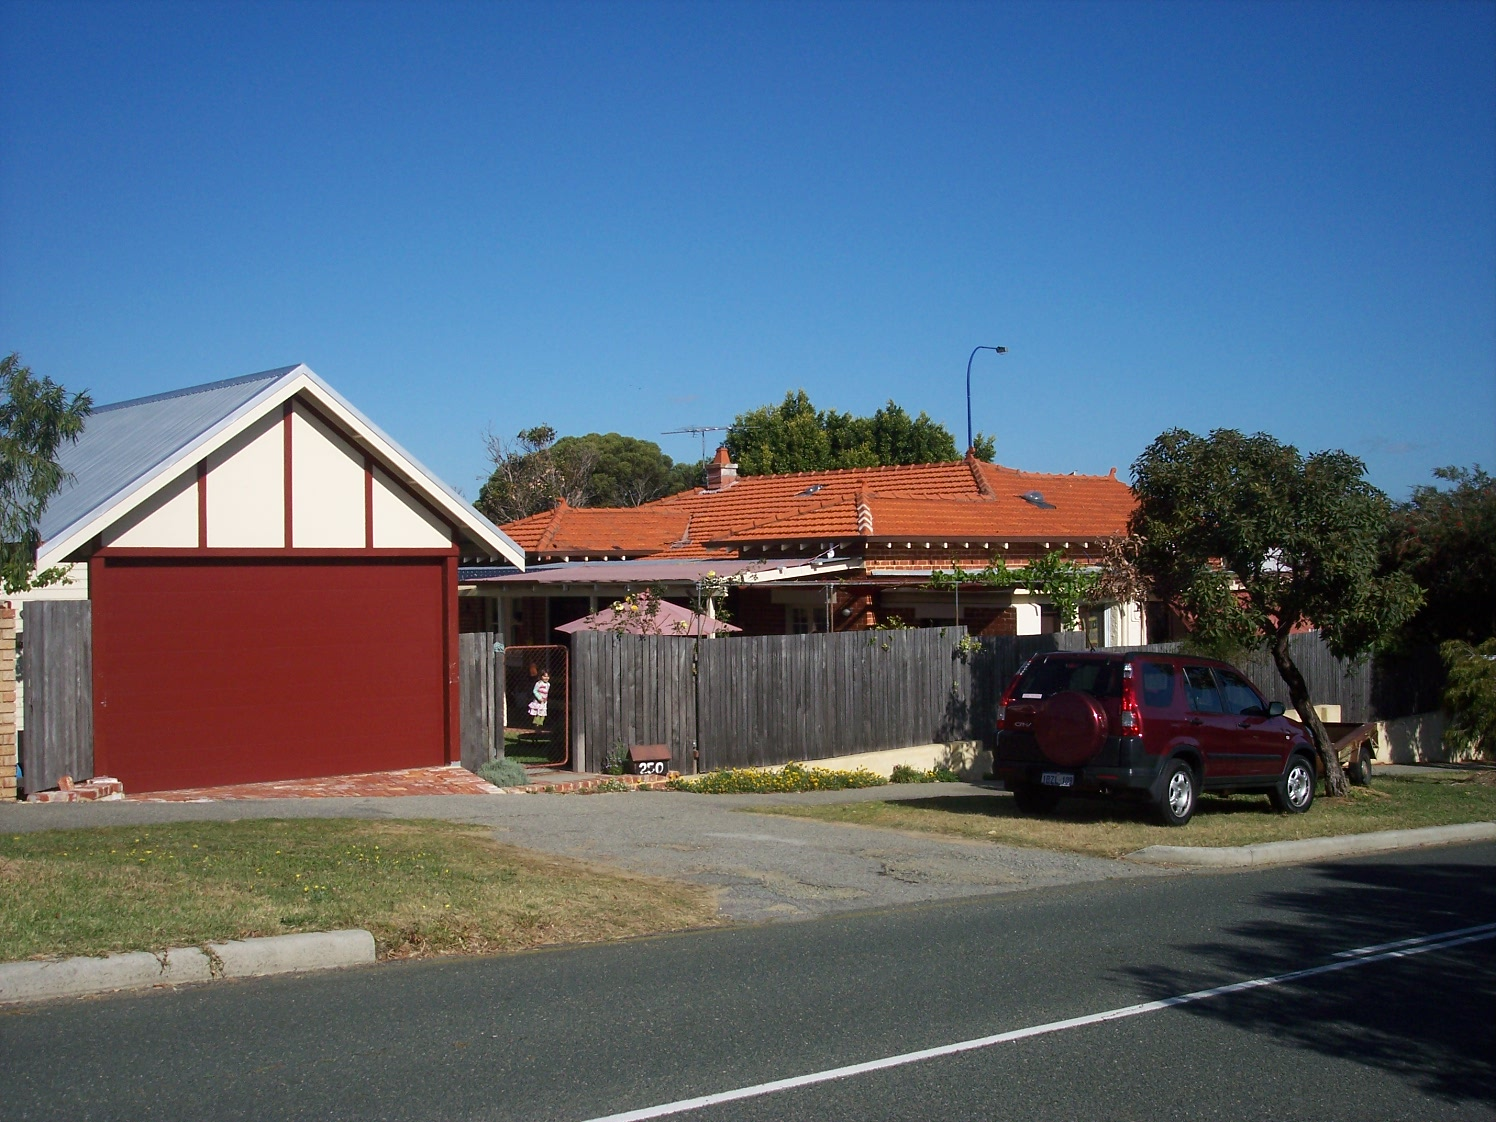 18-10-07 View SE 250 Canning Highway.jpg